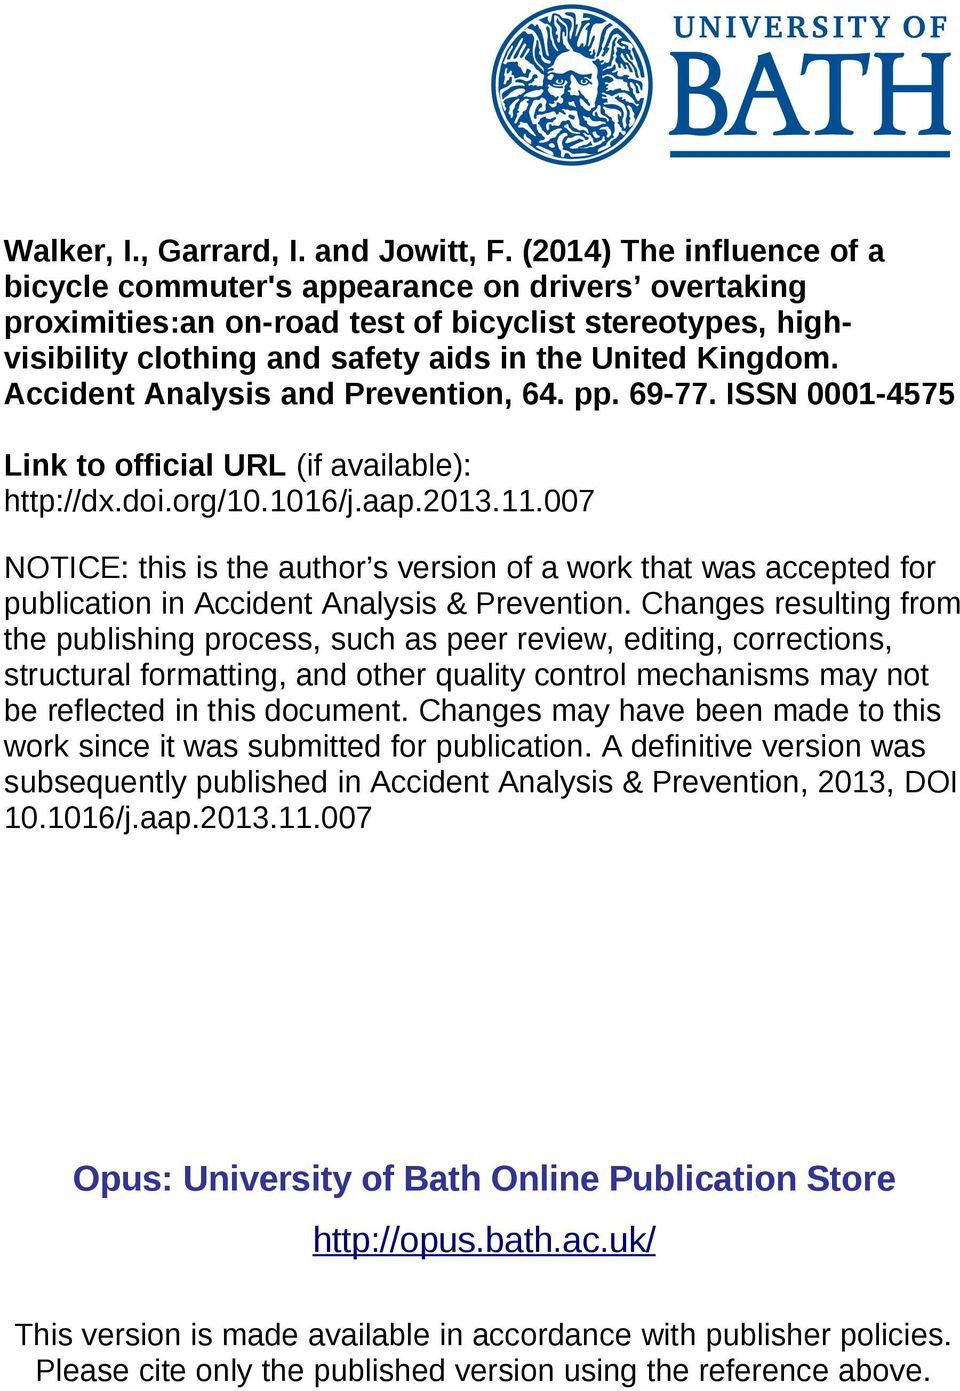 Accident Analysis and Prevention, 64. pp. 69-77. ISSN 0001-4575 Link to official URL (if available): http://dx.doi.org/10.1016/j.aap.2013.11.